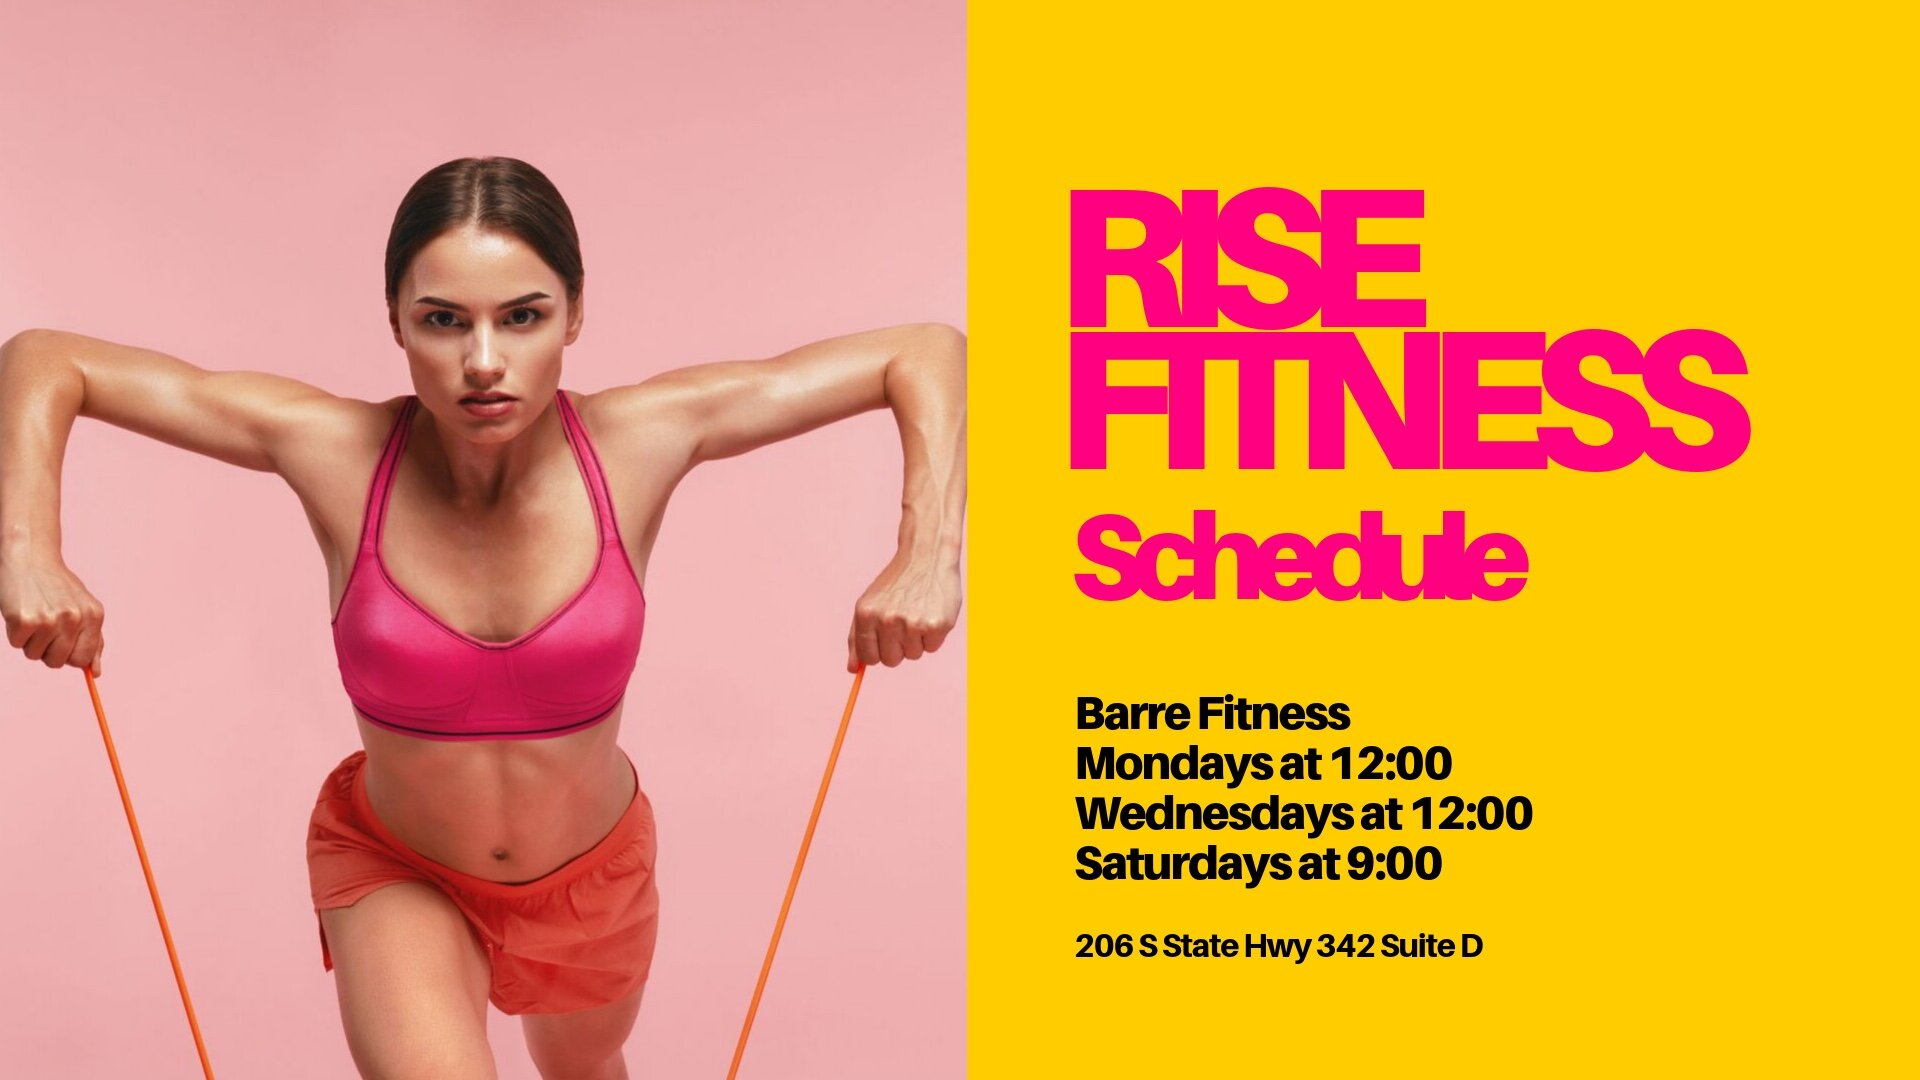 Come join us as we launch RISE Barre Fitness! Bring a yoga mat, water, and wear your socks and prepared to get sweaty and fit! Classes will run 45-50 minutes. We will have an activity area set up for kids, so feel free to bring them along, they might even want to join in!   Class costs: $10 for drop in, $40 for 5 class card, or $70 a month unlimited (that's less than $6.00 a class!)